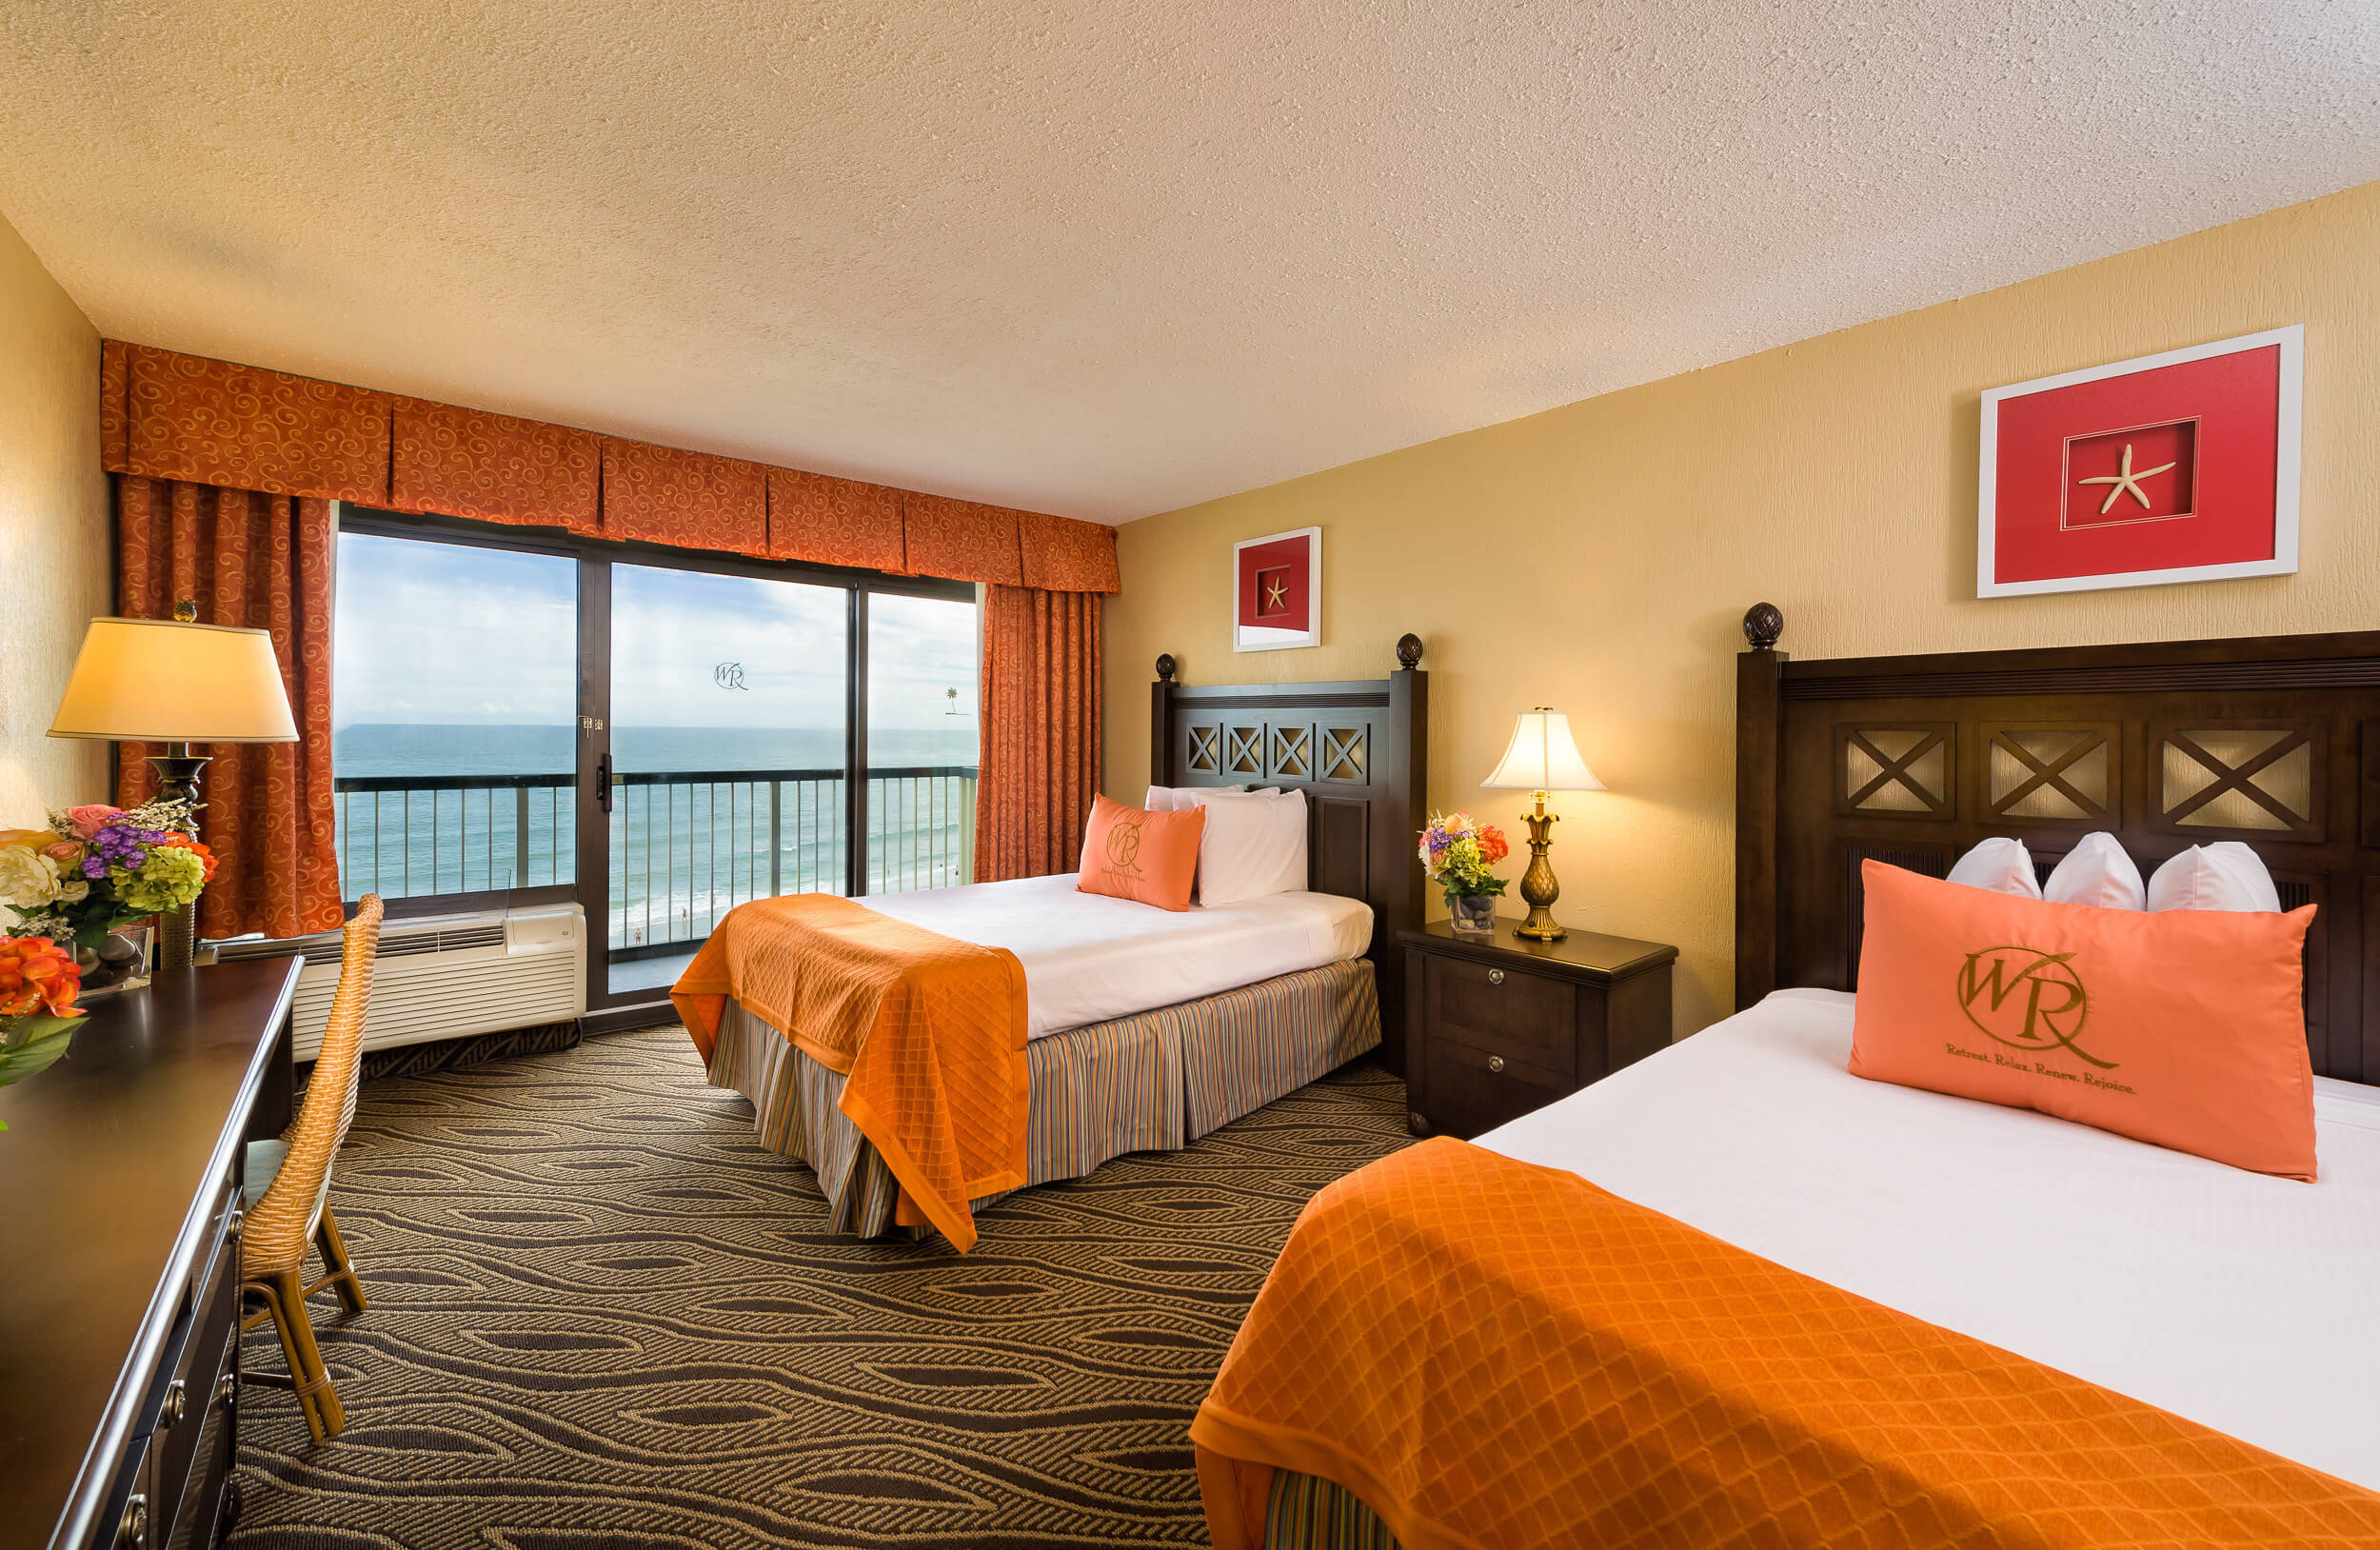 hotels in myrtle beach sc - westgate myrtle beach accommodations